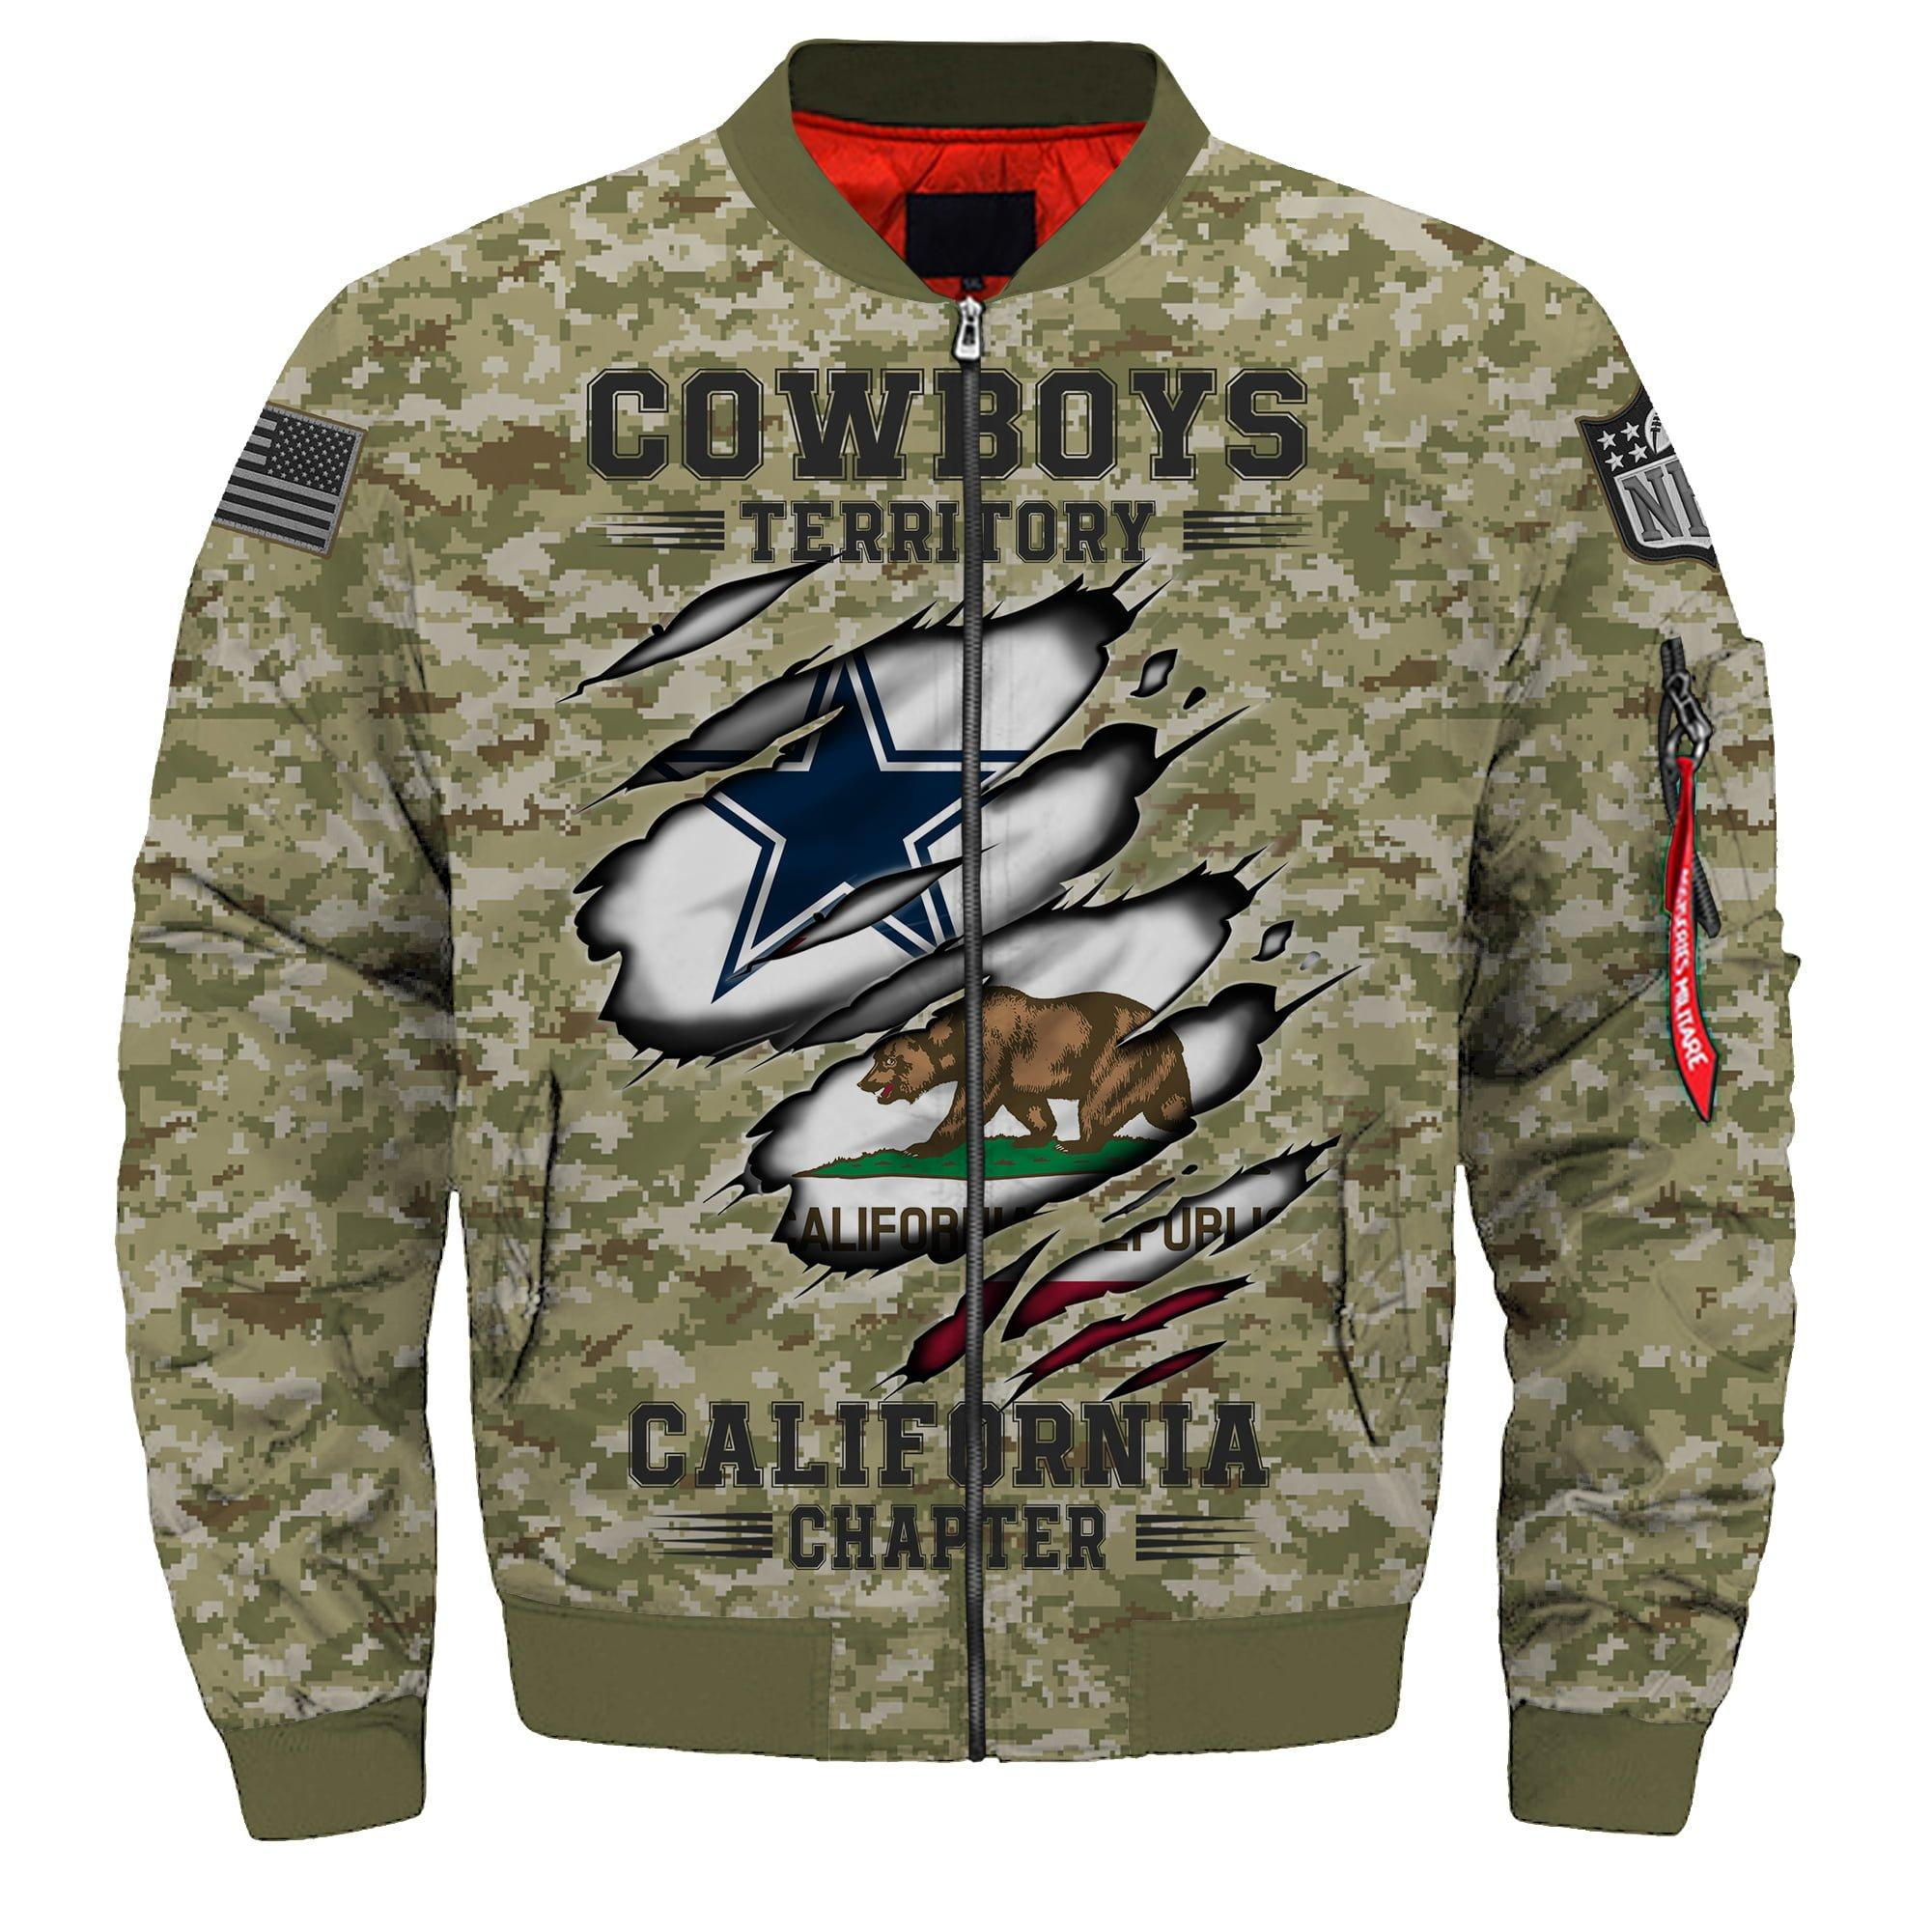 check out b8edc 21853 Cowboys Territory California Chapter - Camo US Navy 3D Print – Free Shipping